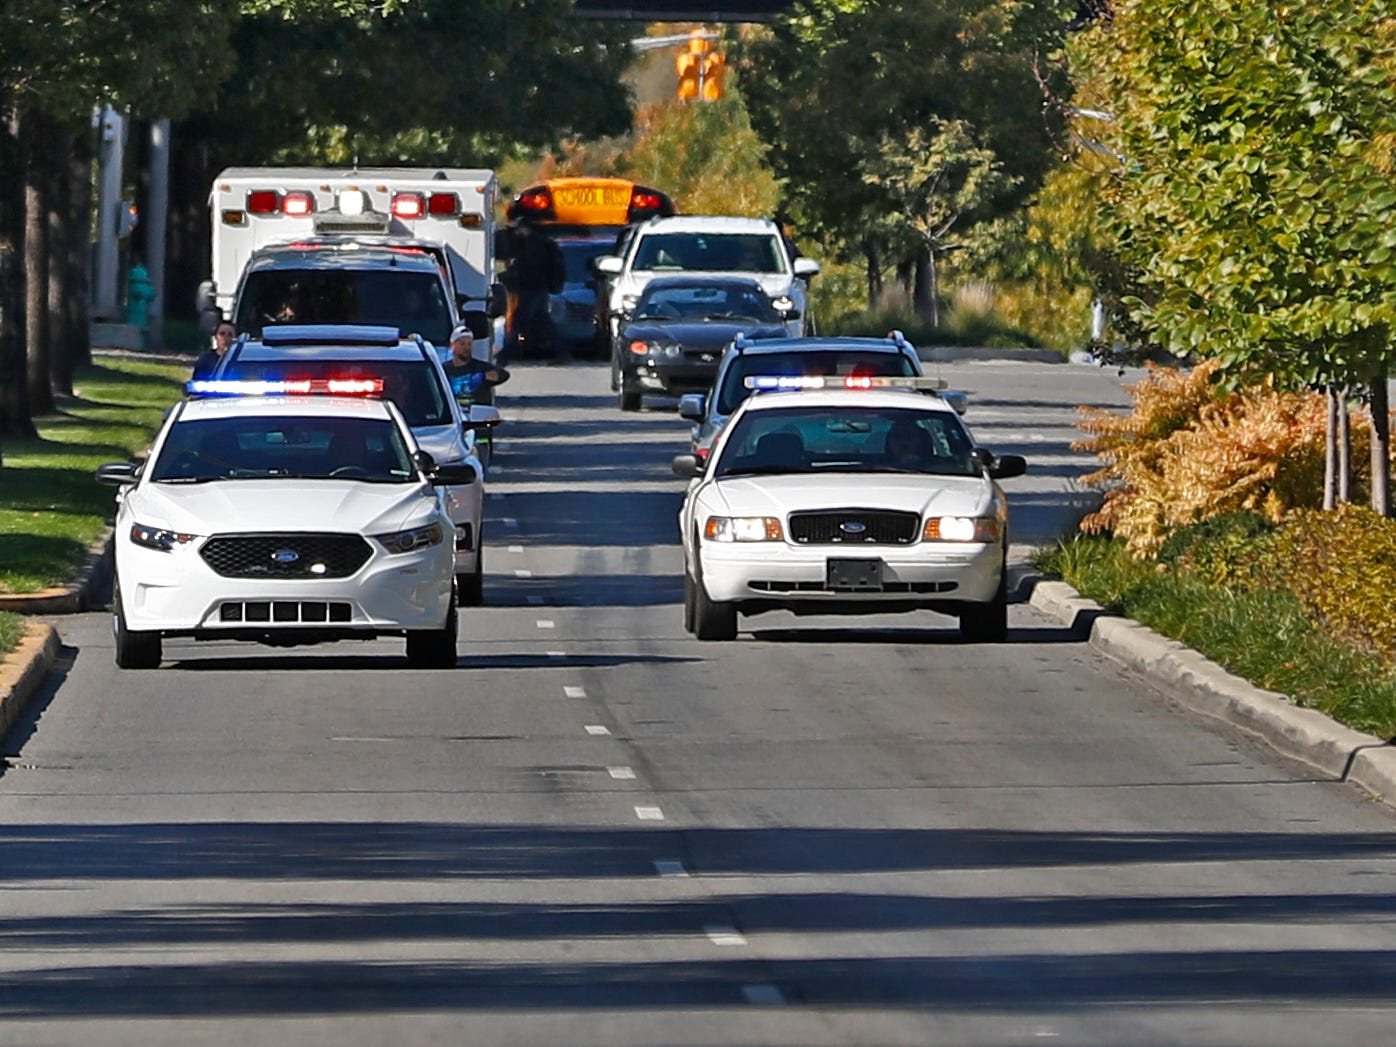 A police escort brings the last leg of the running relay down New York St., Wednesday, Oct. 24, 2018, to finish the pace-setting run for the 2019 OneAmerica 500 Festival Mini-Marathon.  The 500 Festival will donate $1 to the CANDLES Holocaust Museum in Terre Haute for every mini-marathon participant who finishes the 2019 race in a better time than Team Eva.  Holocaust survivor Eva Kor ran the very last leg of the relay race.